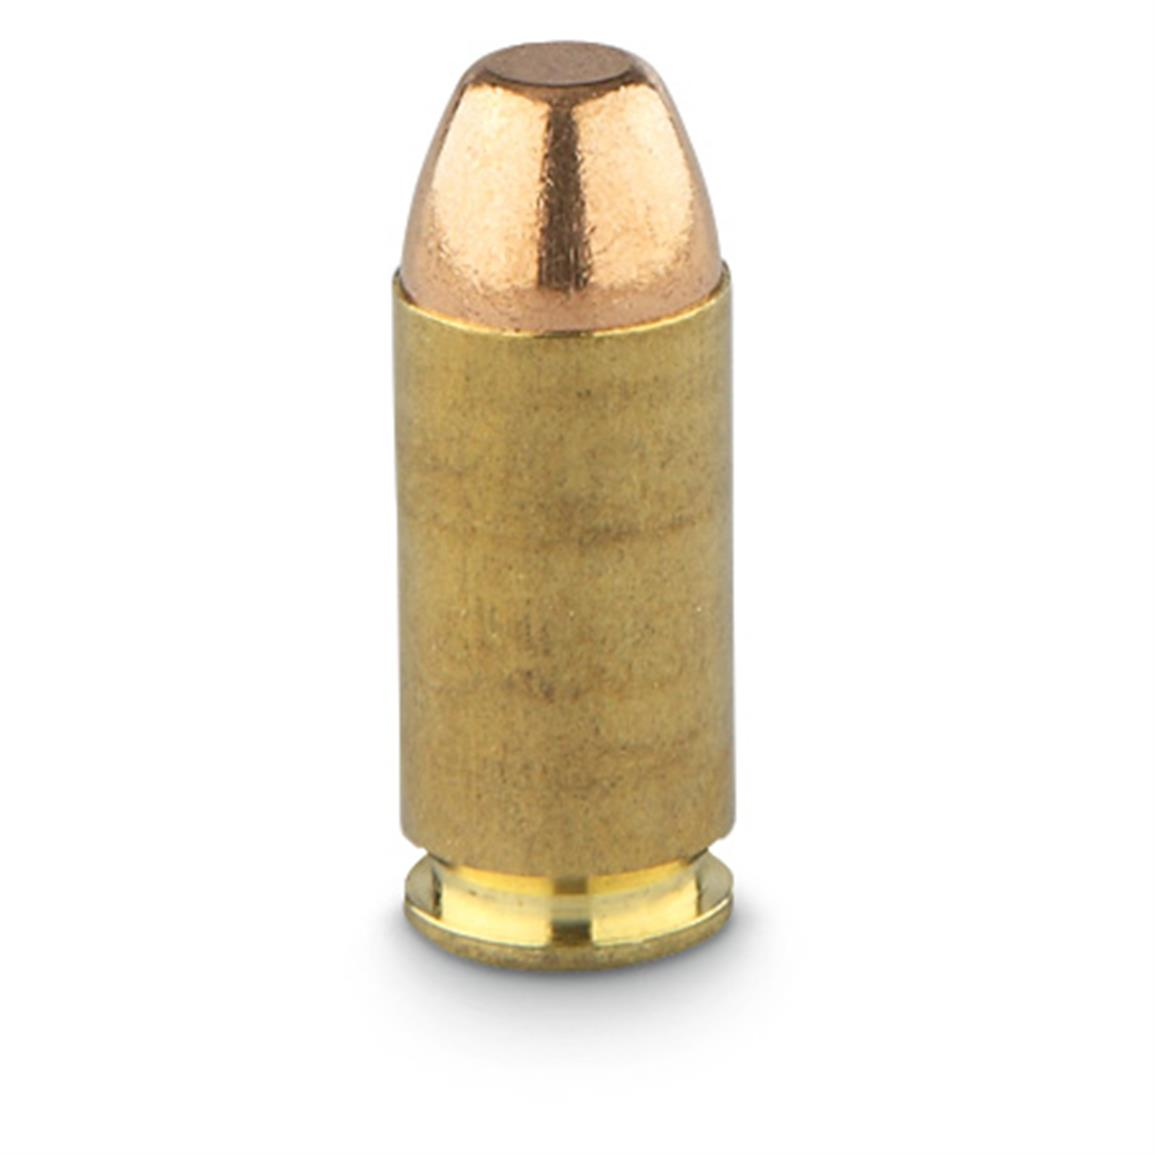 115 Grain full metal jacket bullet